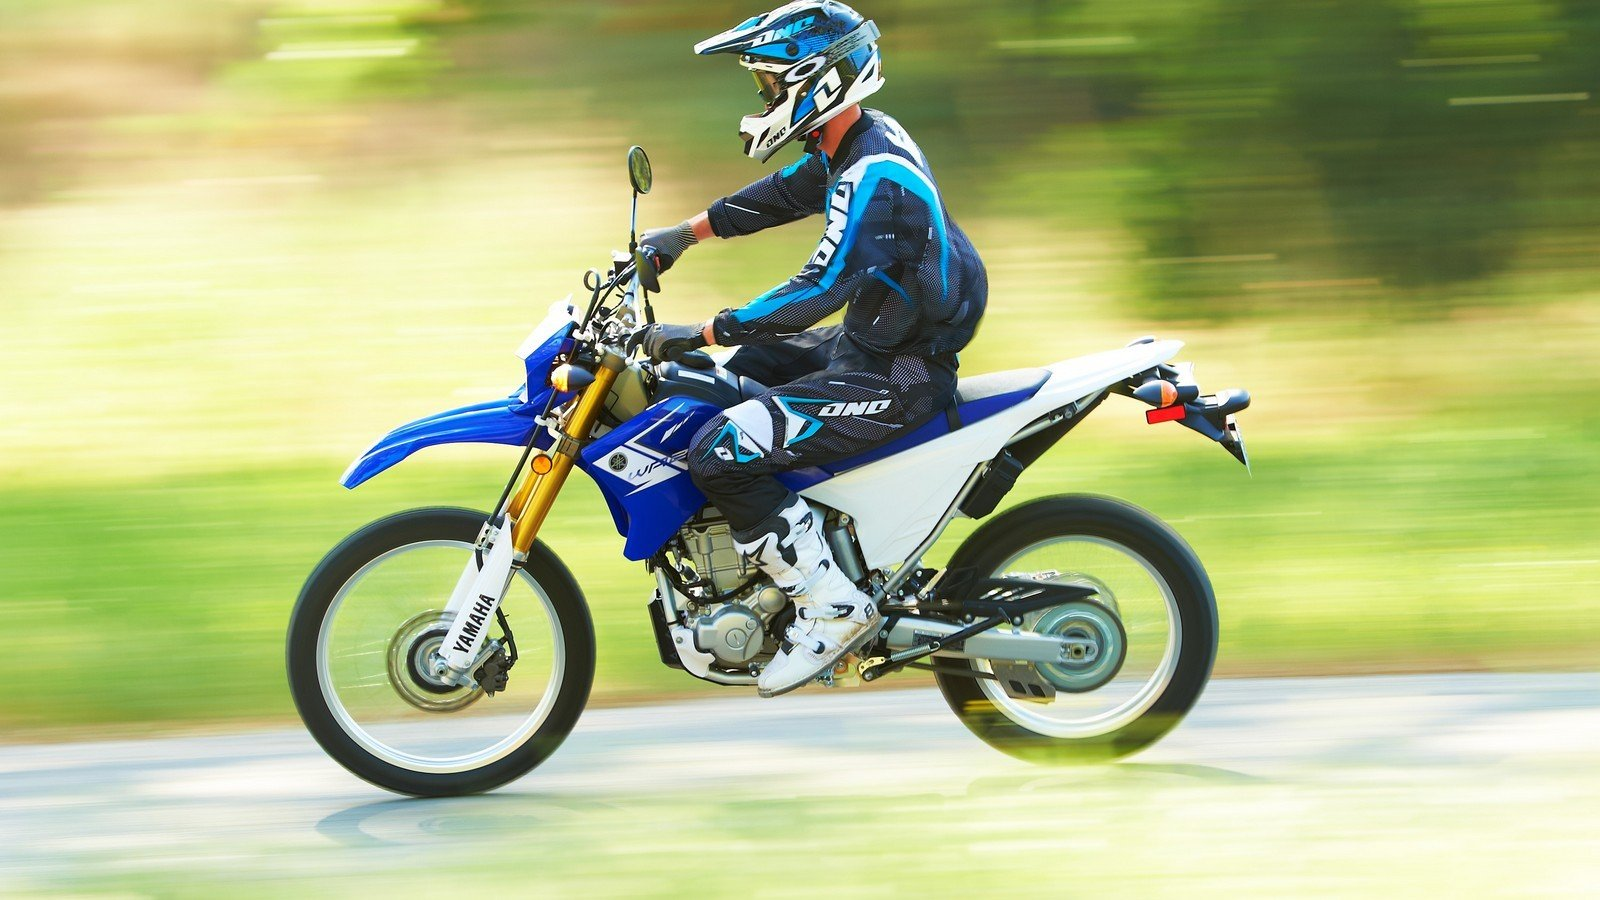 2013 yamaha wr250r picture 464412 motorcycle review. Black Bedroom Furniture Sets. Home Design Ideas